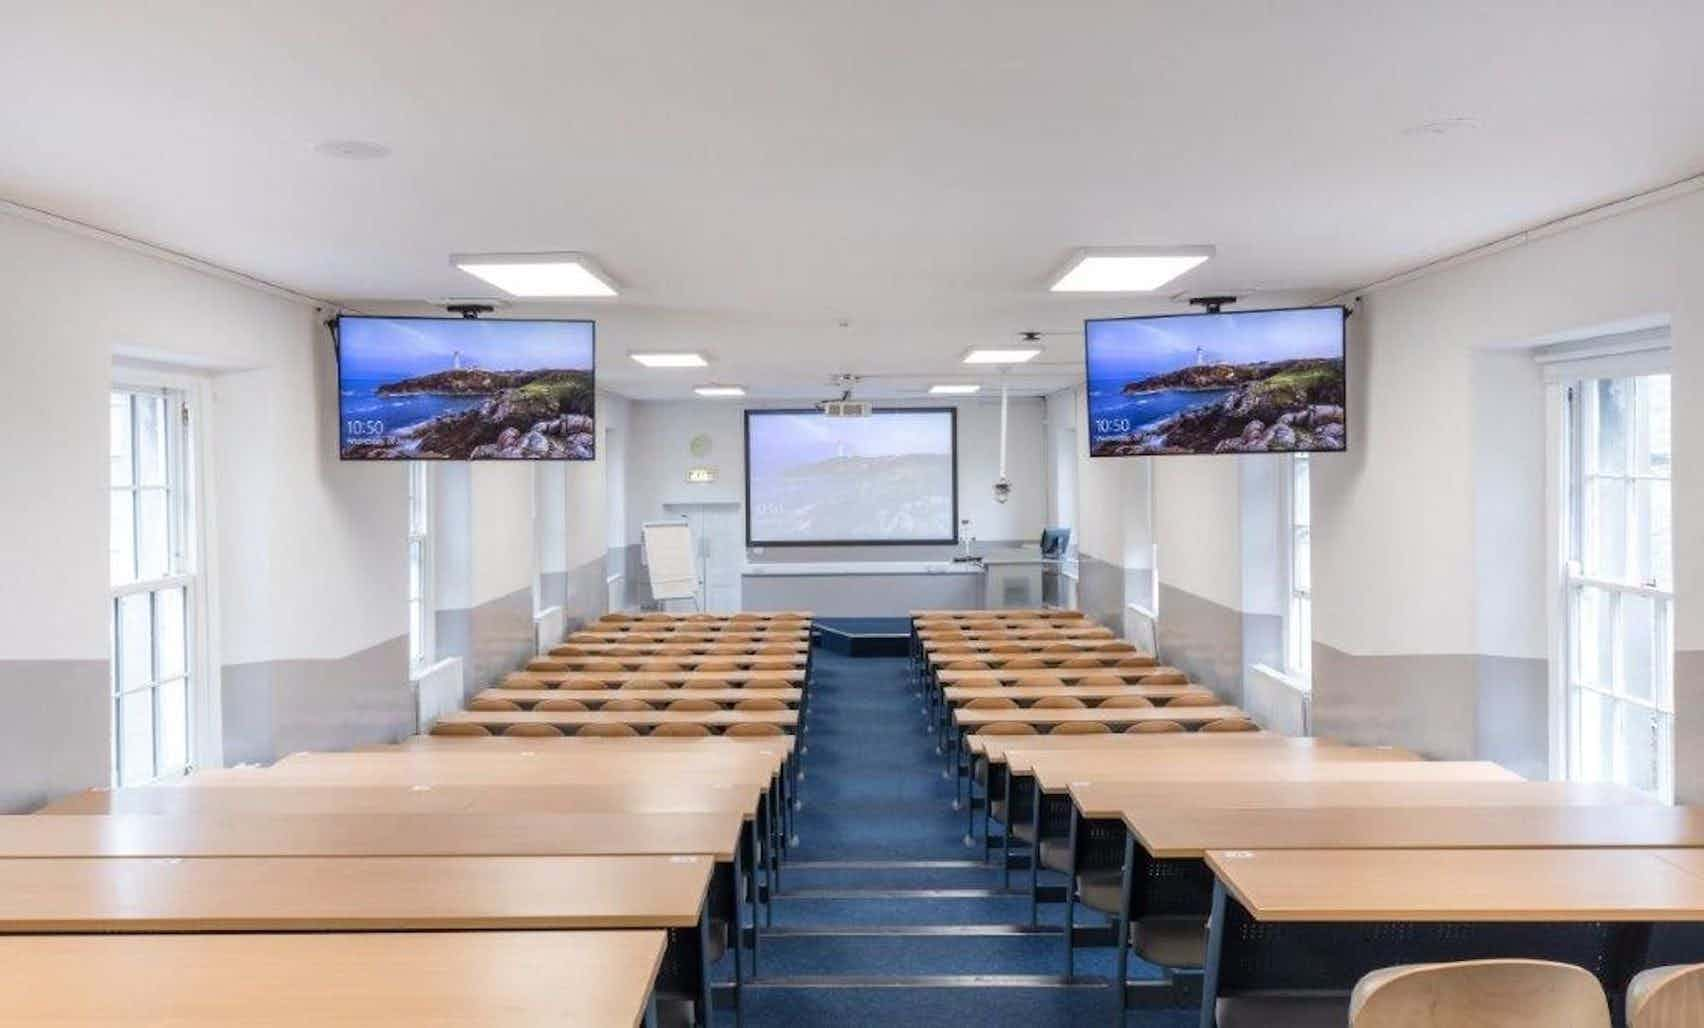 Classroom 1, Griffith College